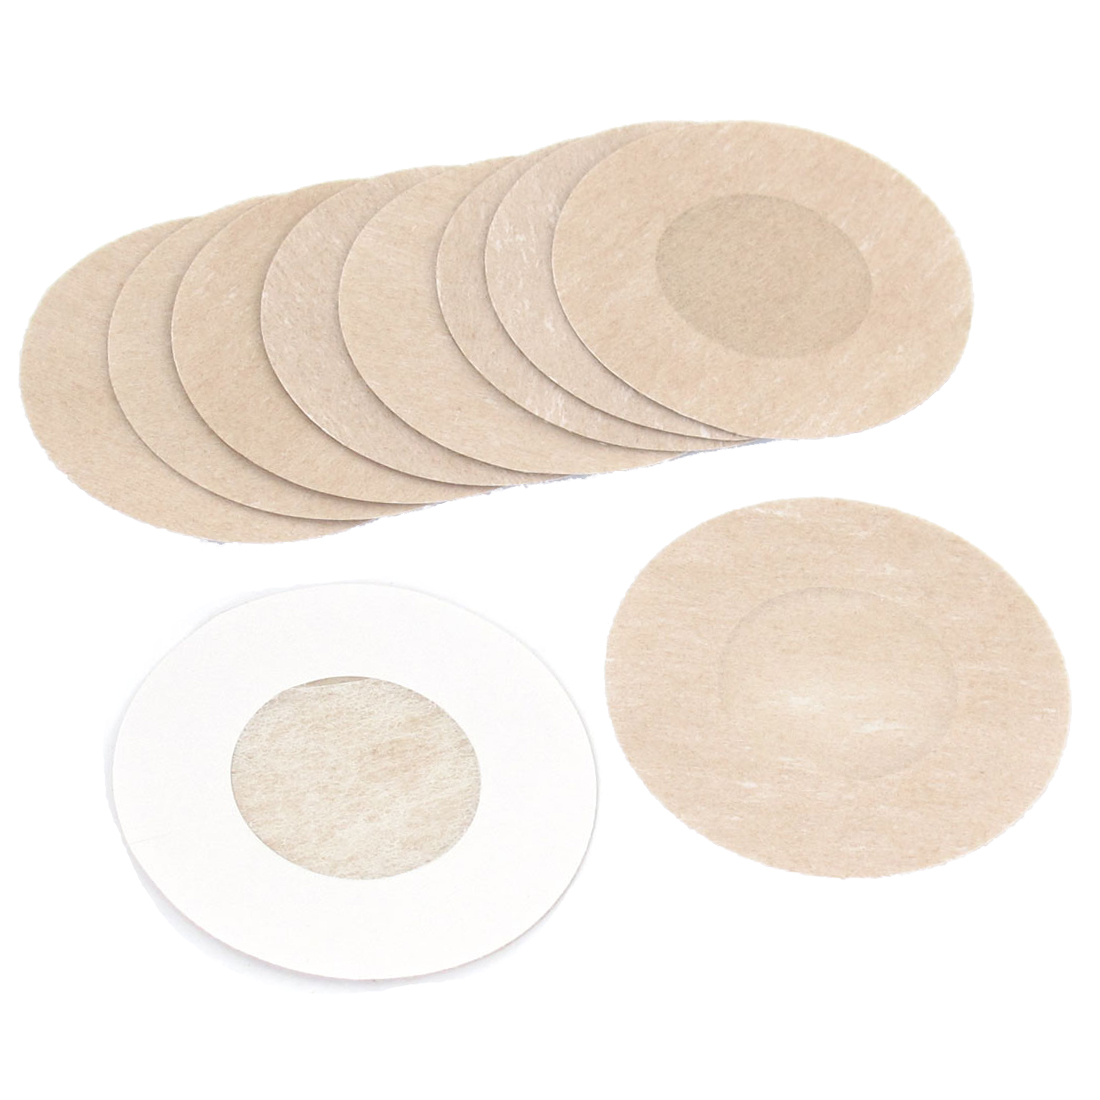 "5 Pairs 2.4"" Dia Non-Woven Waterproof Adhesive Nipple Pad Cover Beige"